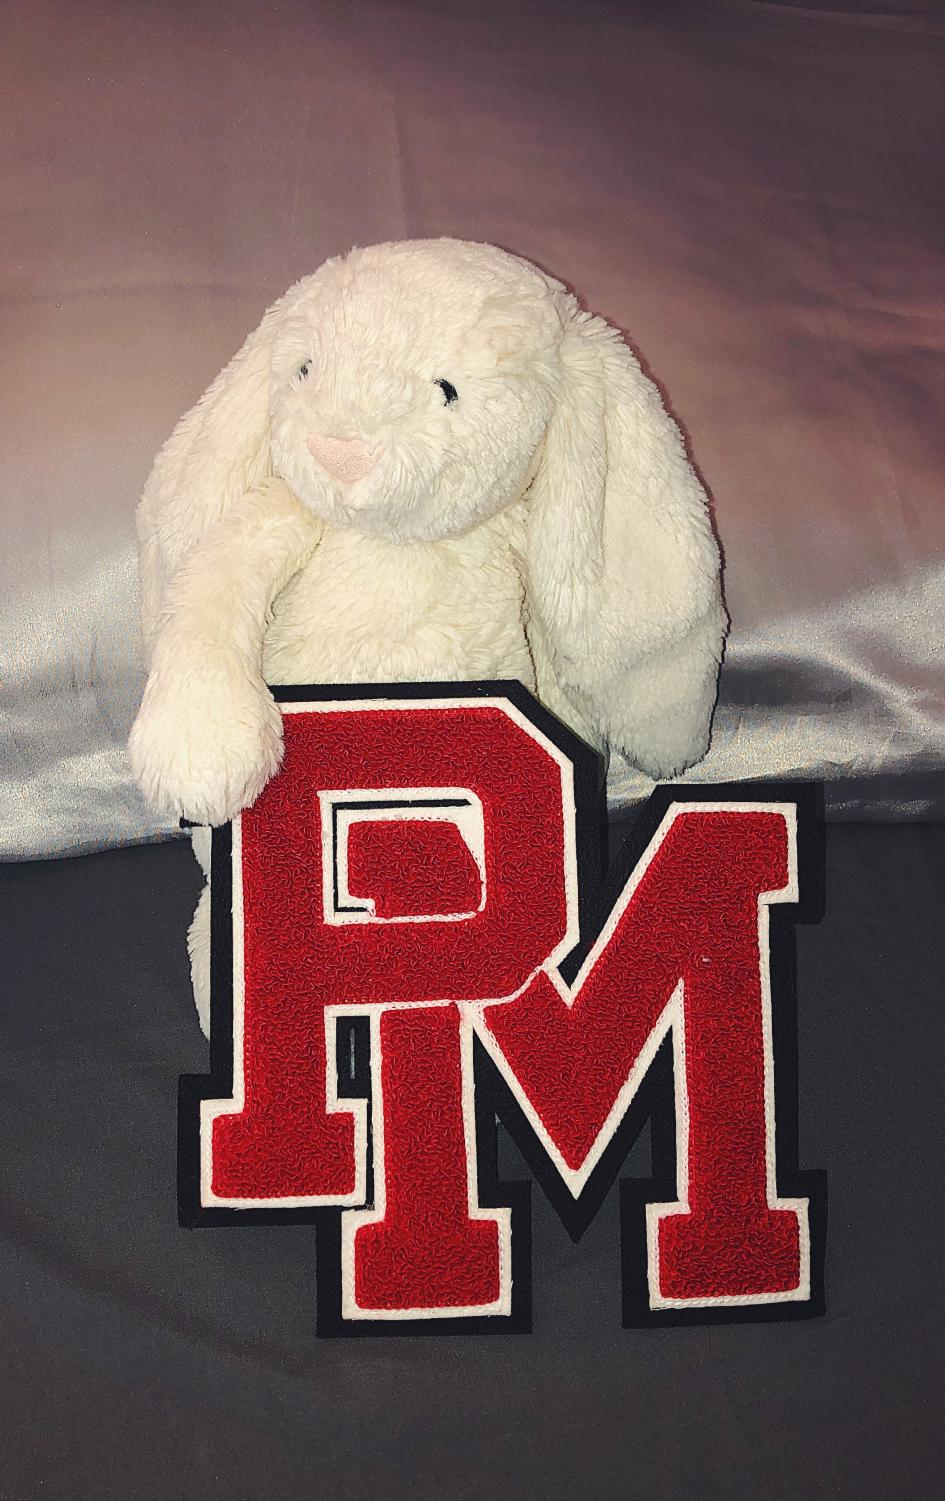 Which mascot would be the best fit for PMHS?